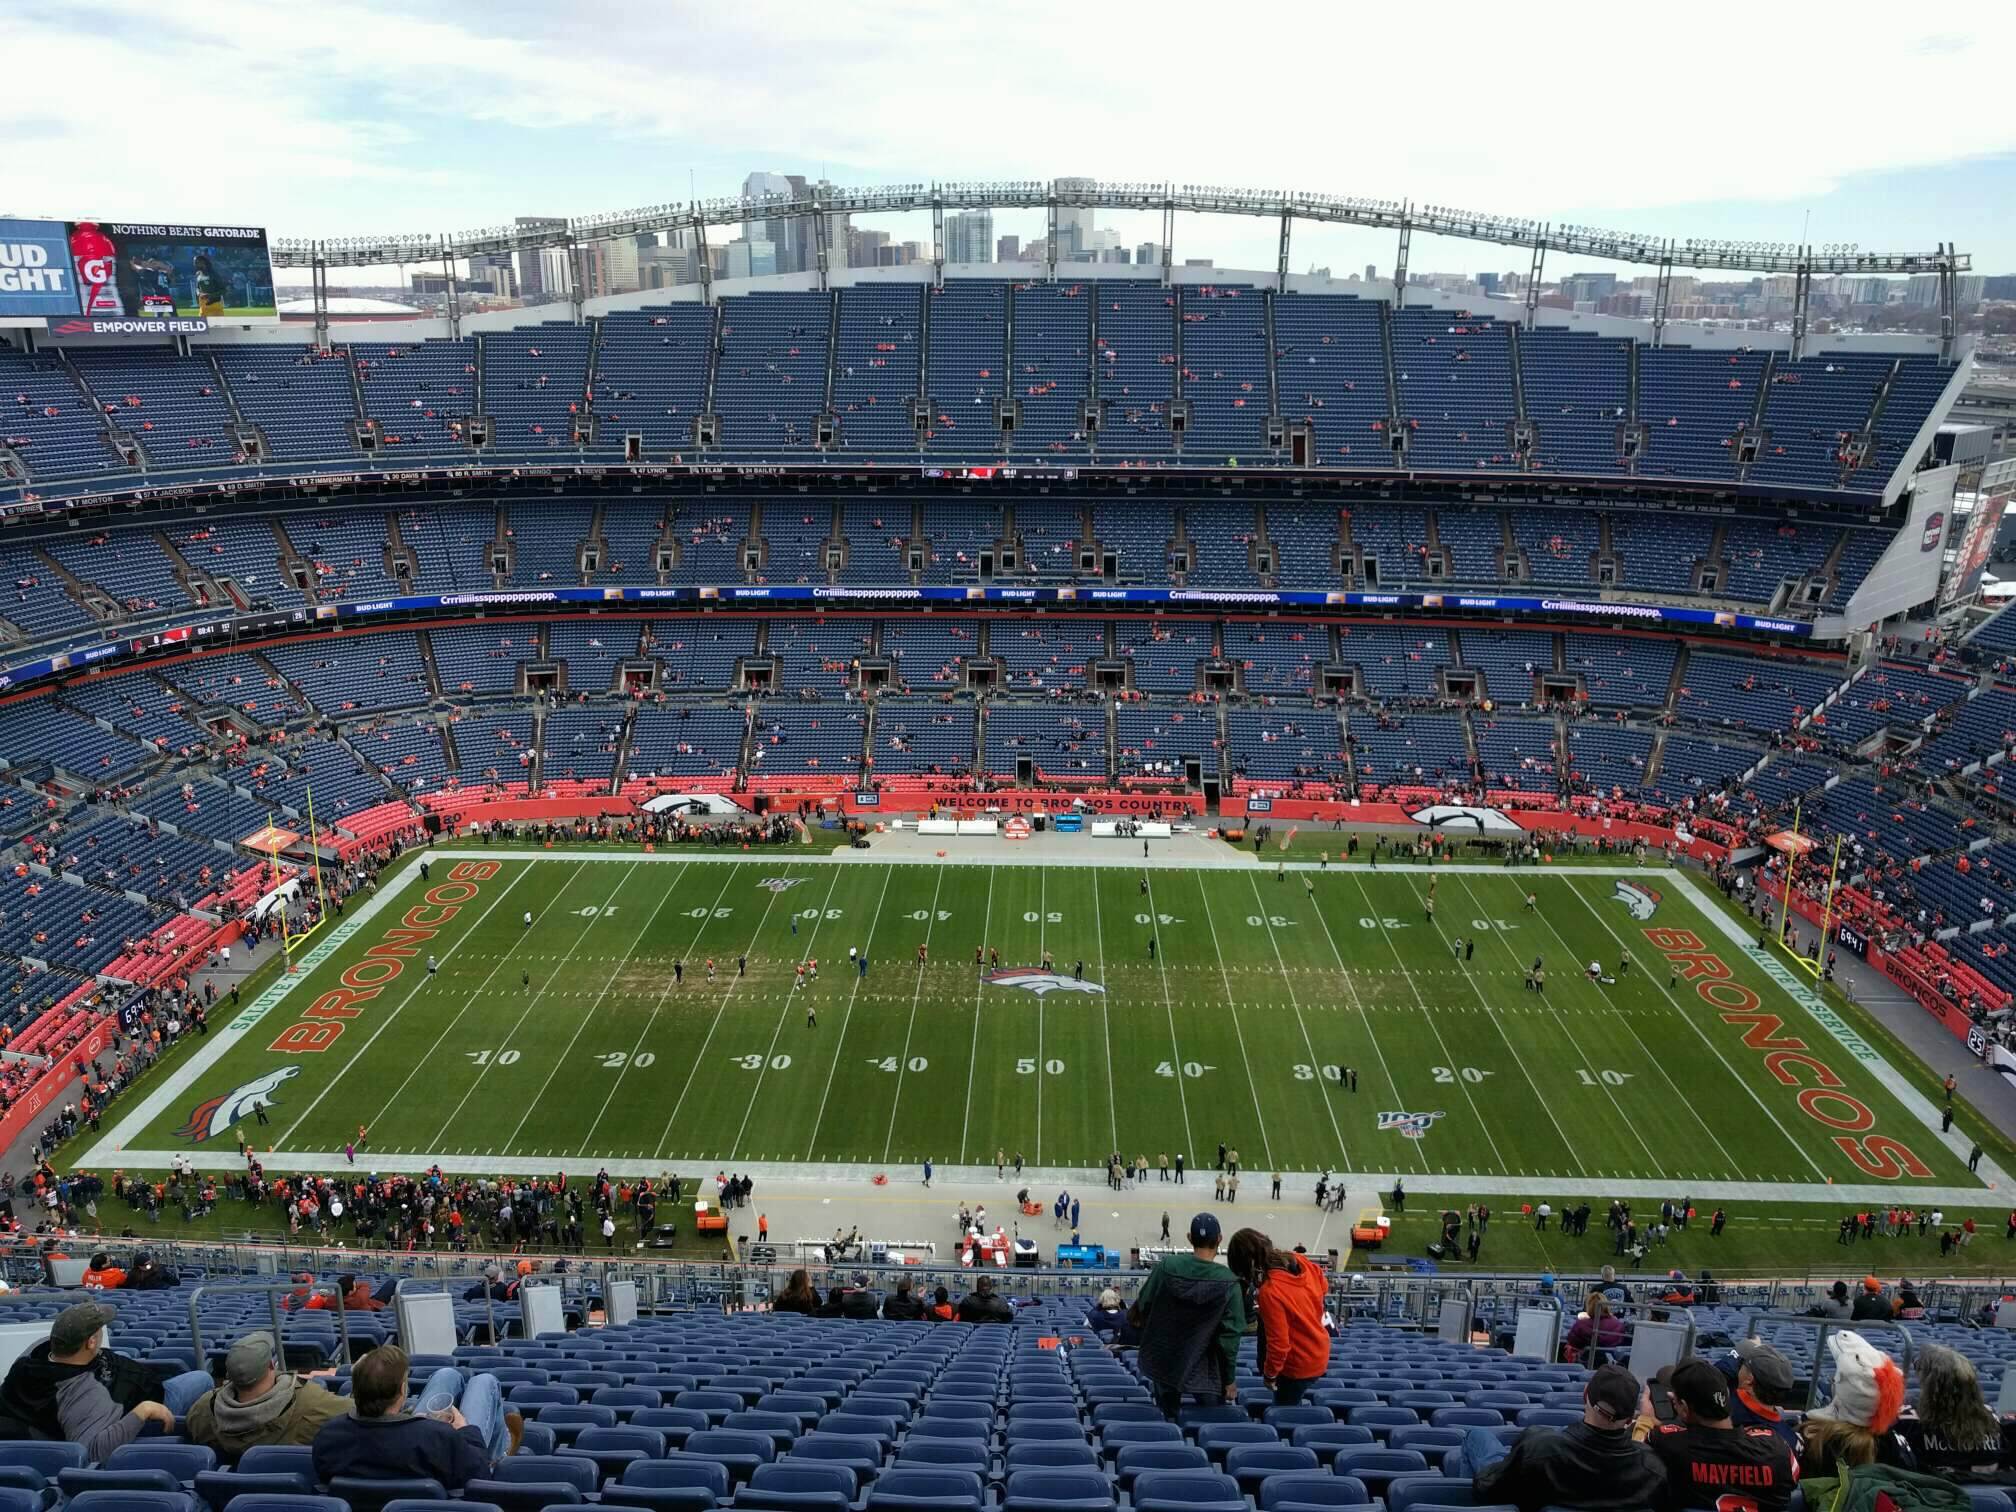 Empower Field at Mile High Stadium Section 508 Row 33 Seat 10